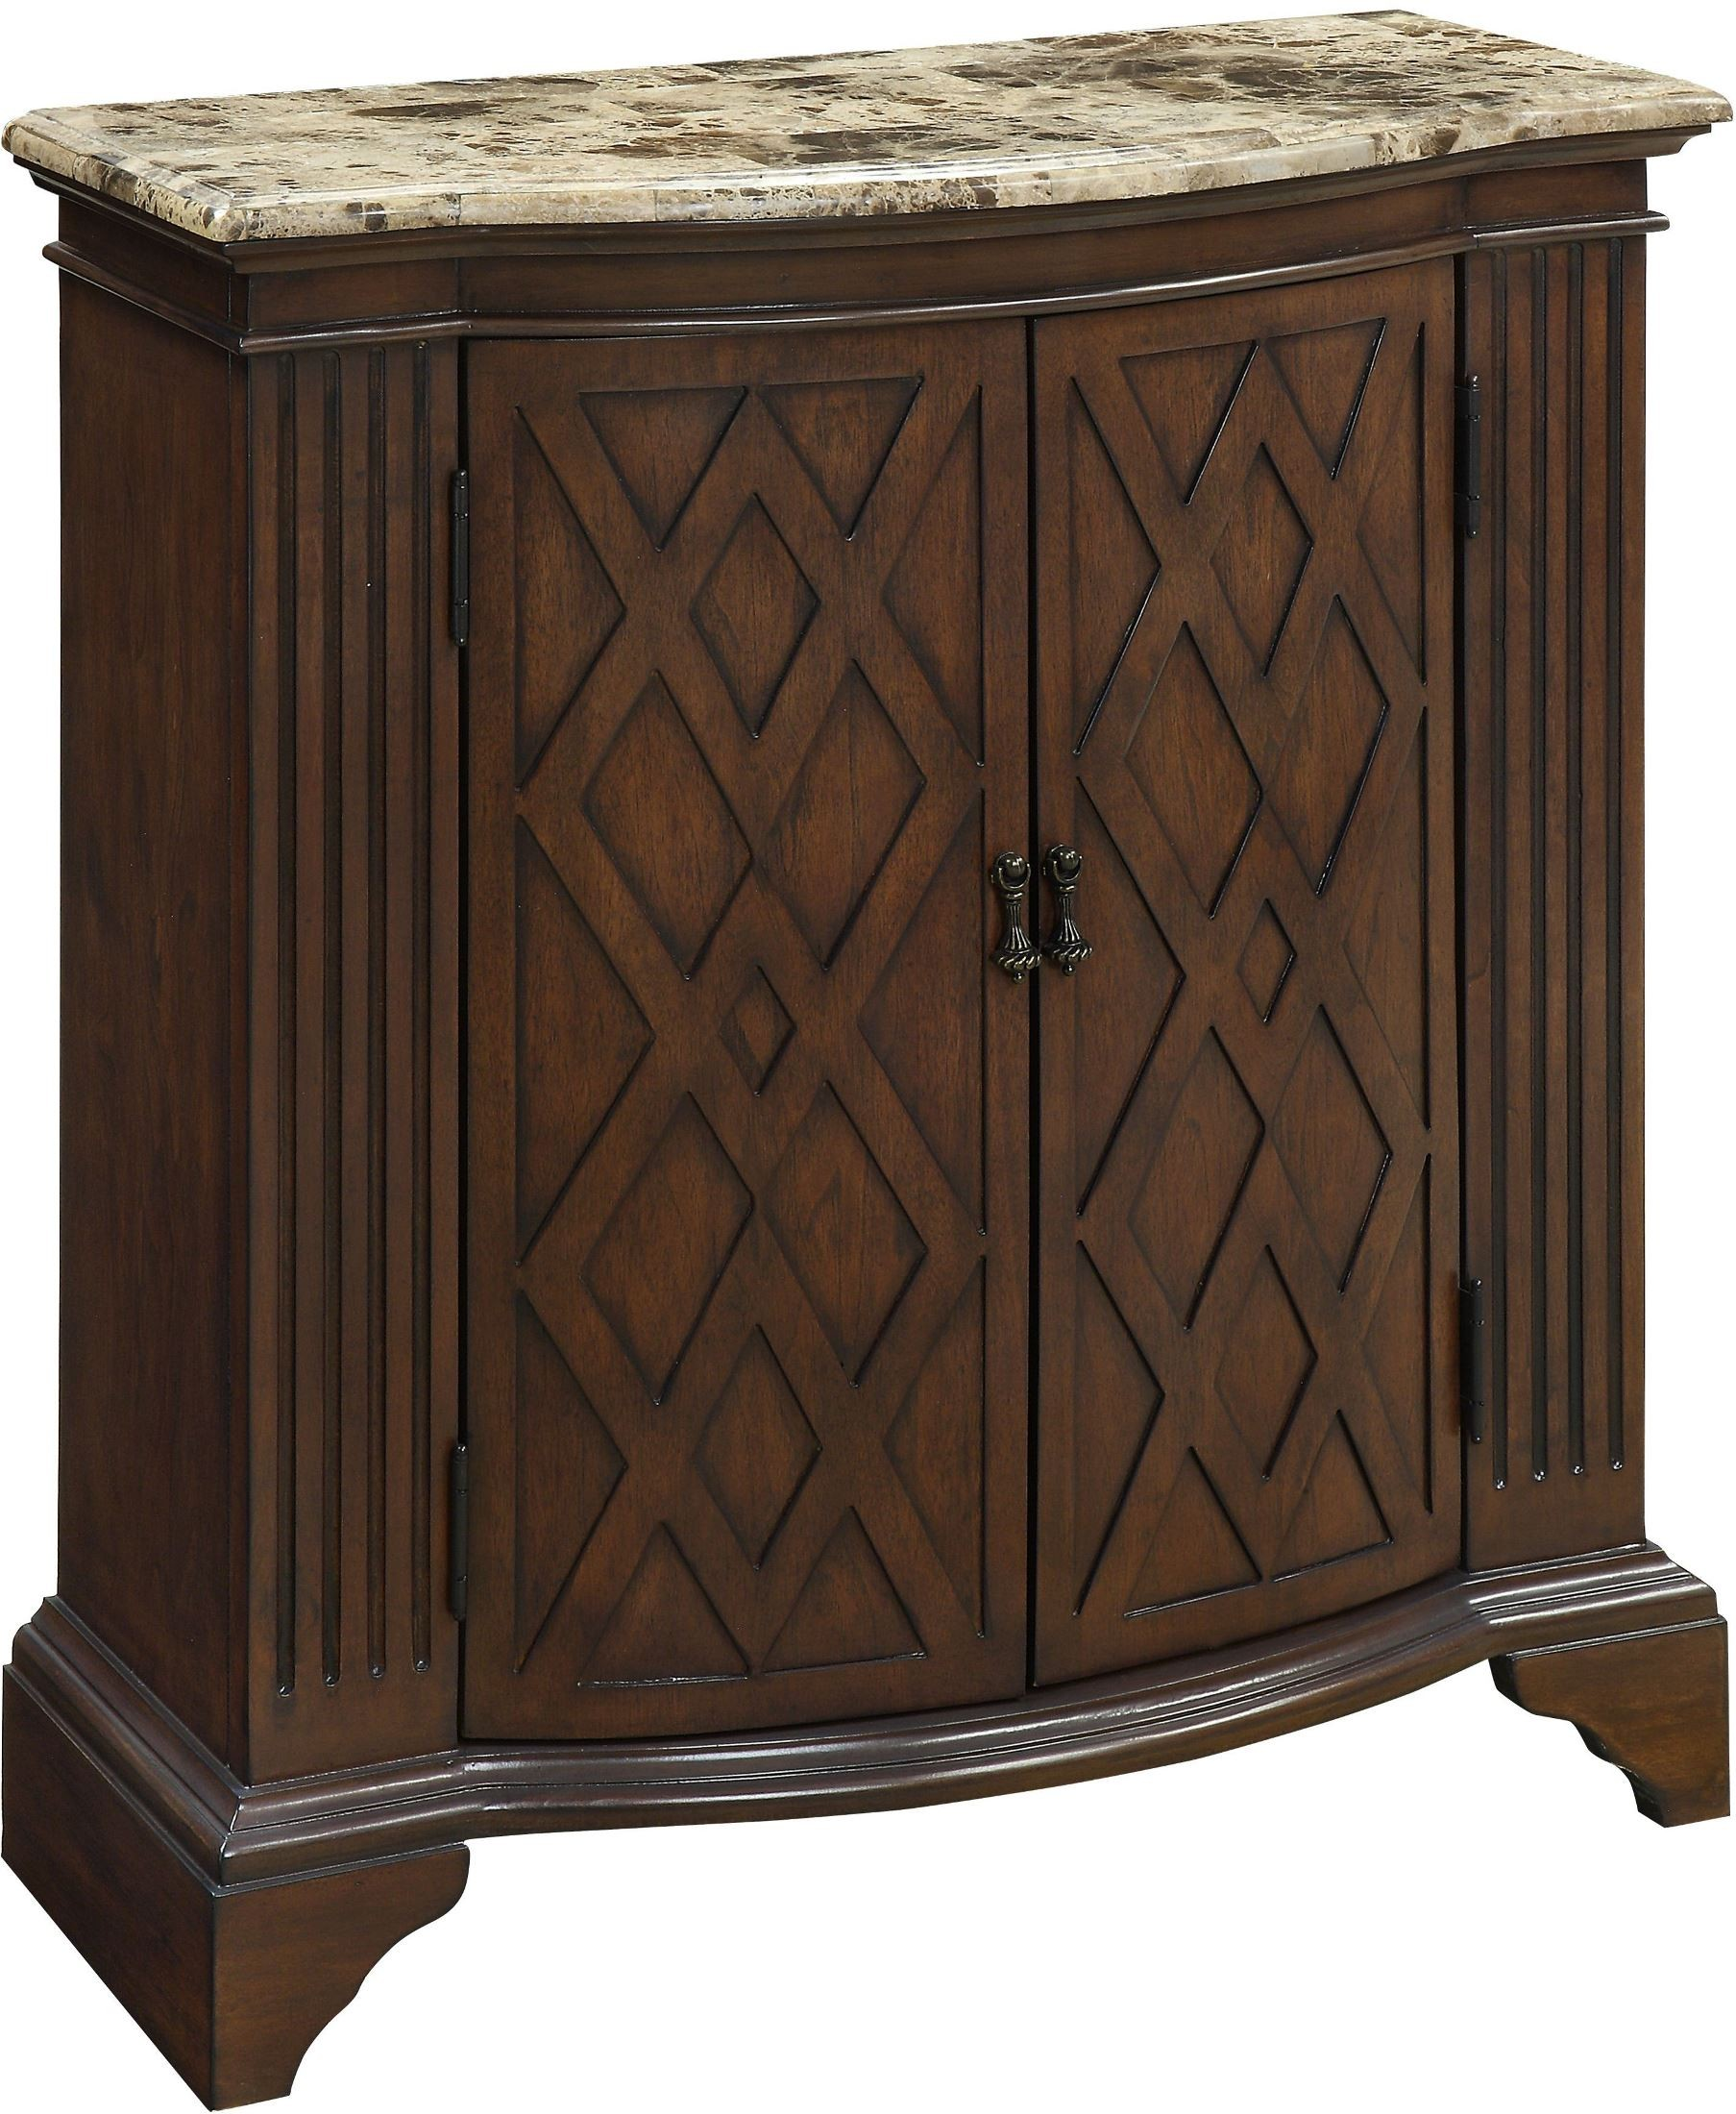 Barrister Warm Brown 2 Door Cabinet from Coast to Coast